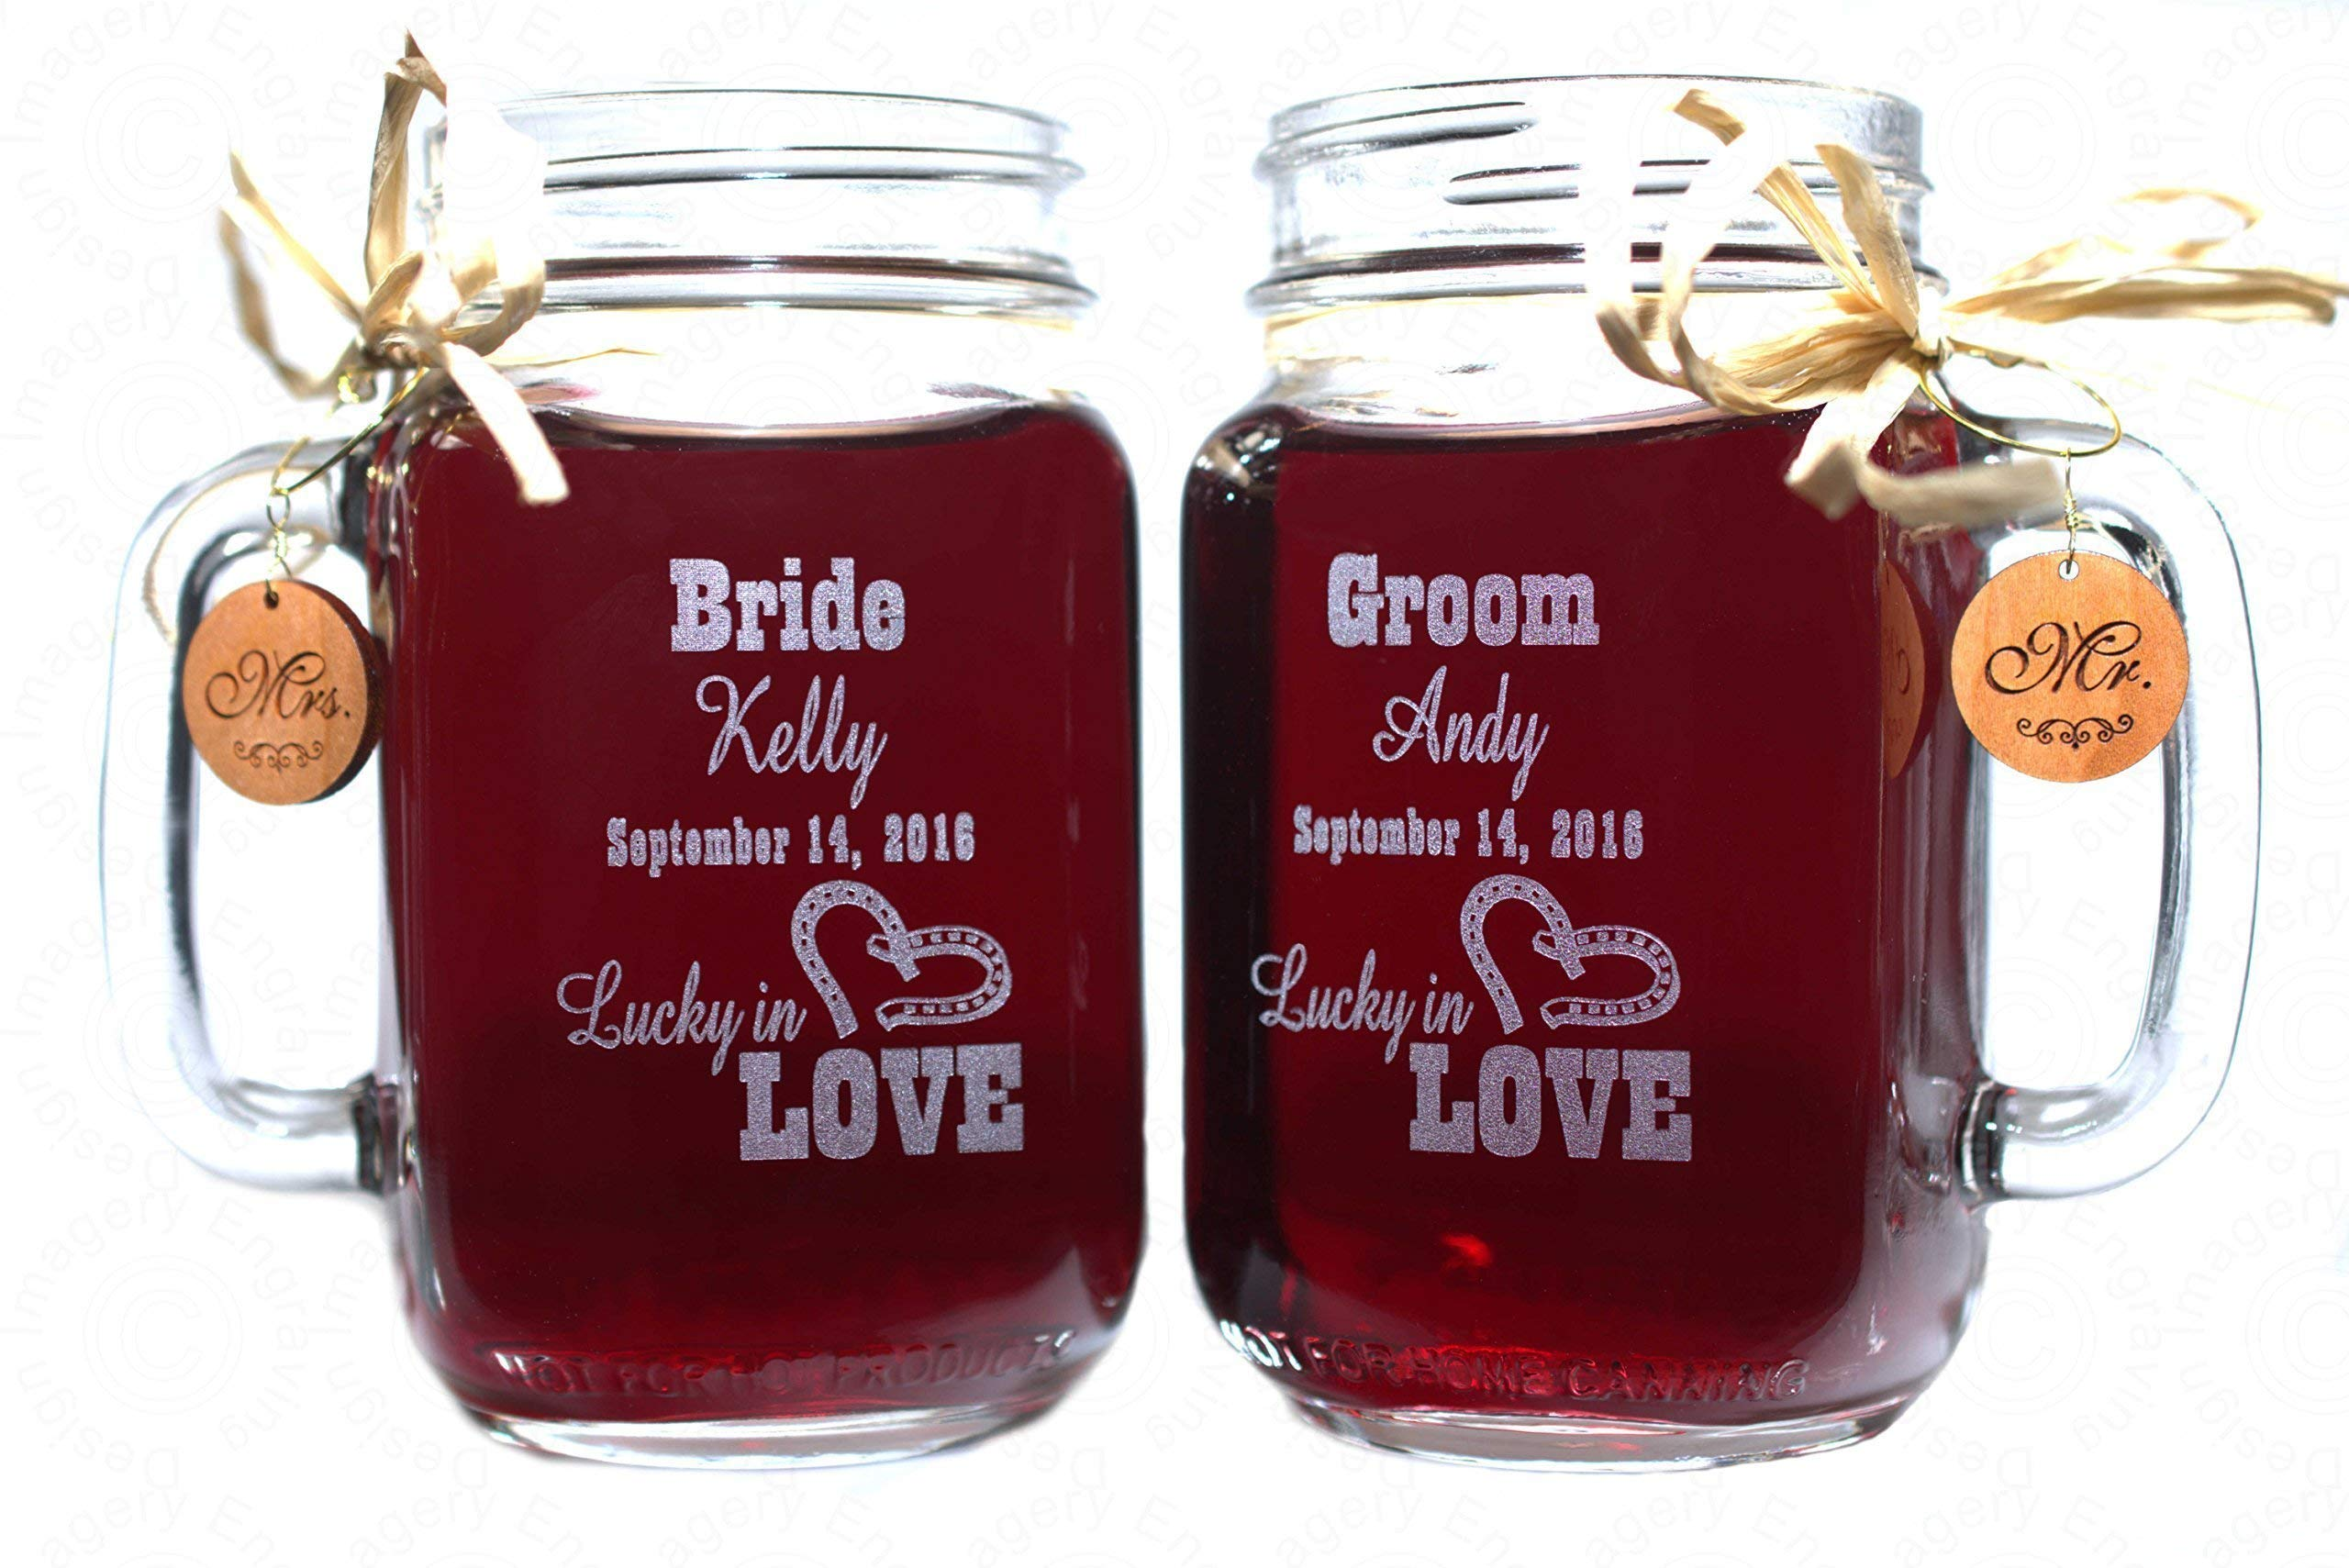 Bride and Groom Wedding Mason Jars for your Western Wedding Personalized with Name and Date.